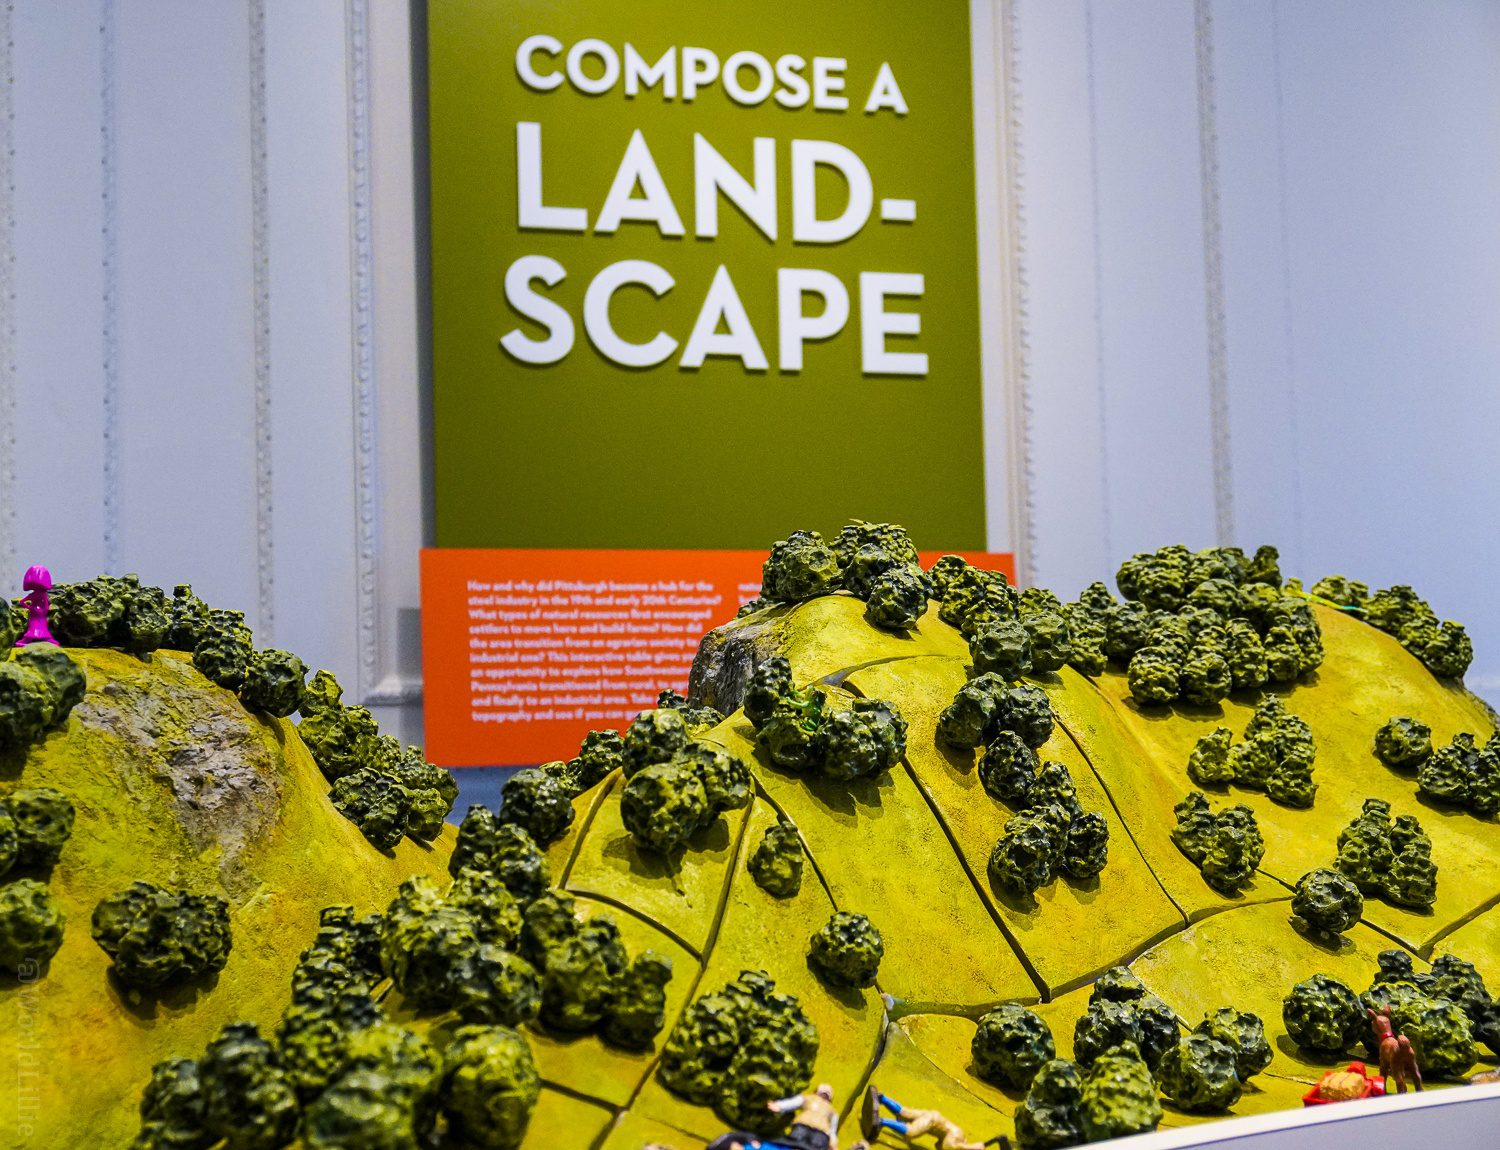 A lesson in topography and landscape design.